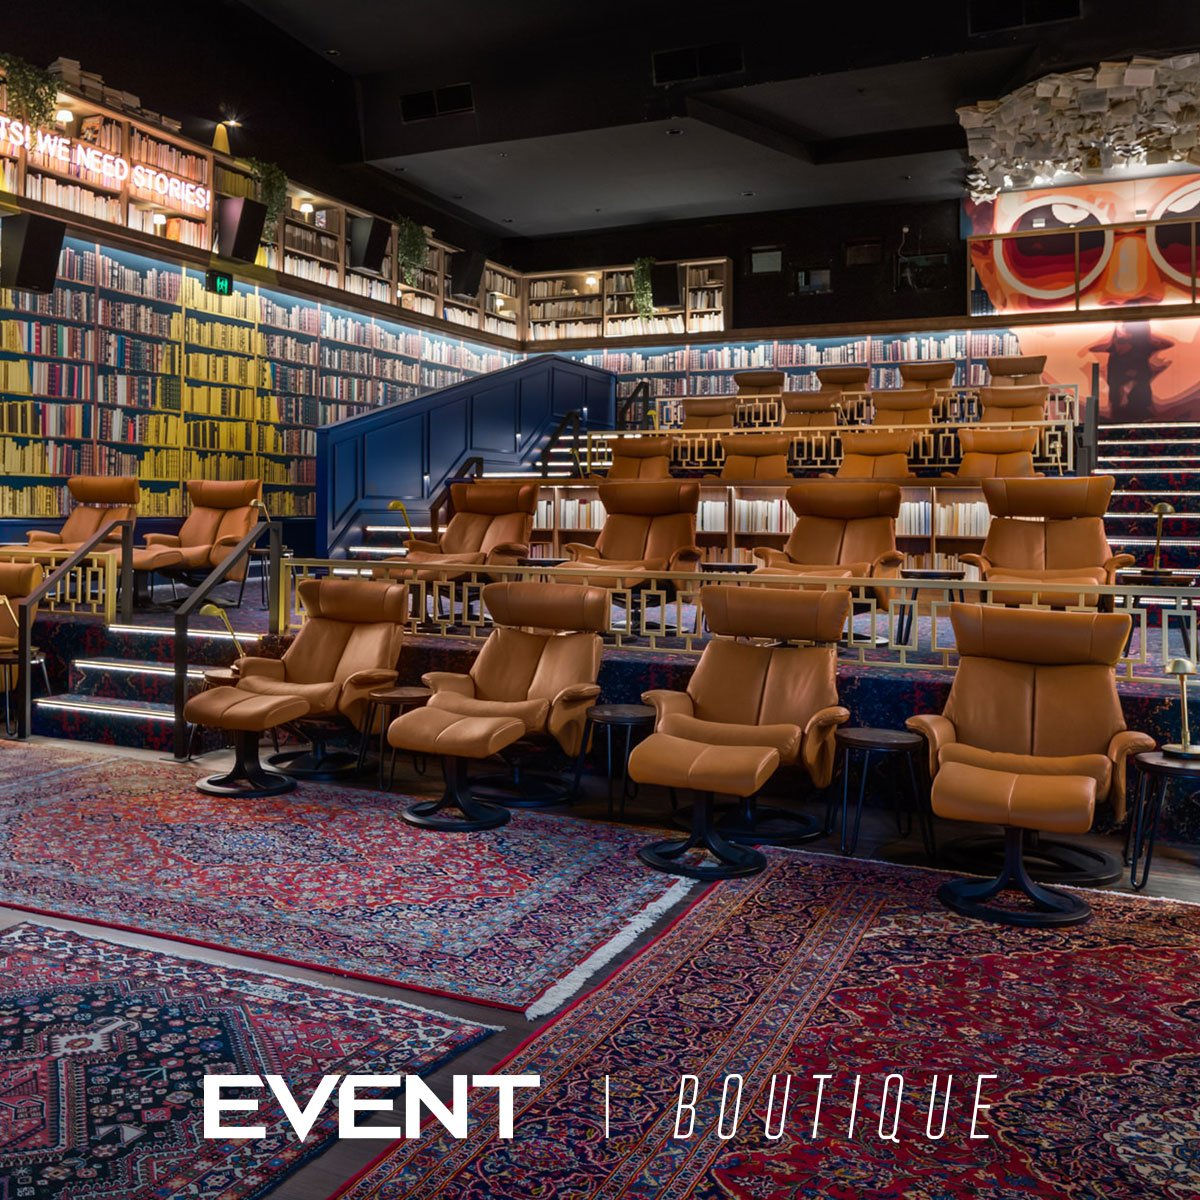 Introducing #EventBoutique at #EventCinemas George St, Sydney. An intimate cinema with a boutique vibe. Designer boutique recliners with footrest, service at your seat and the best cinema sound and picture. Buy tickets now: http://bit.ly/BoutiqueEventCinemas…